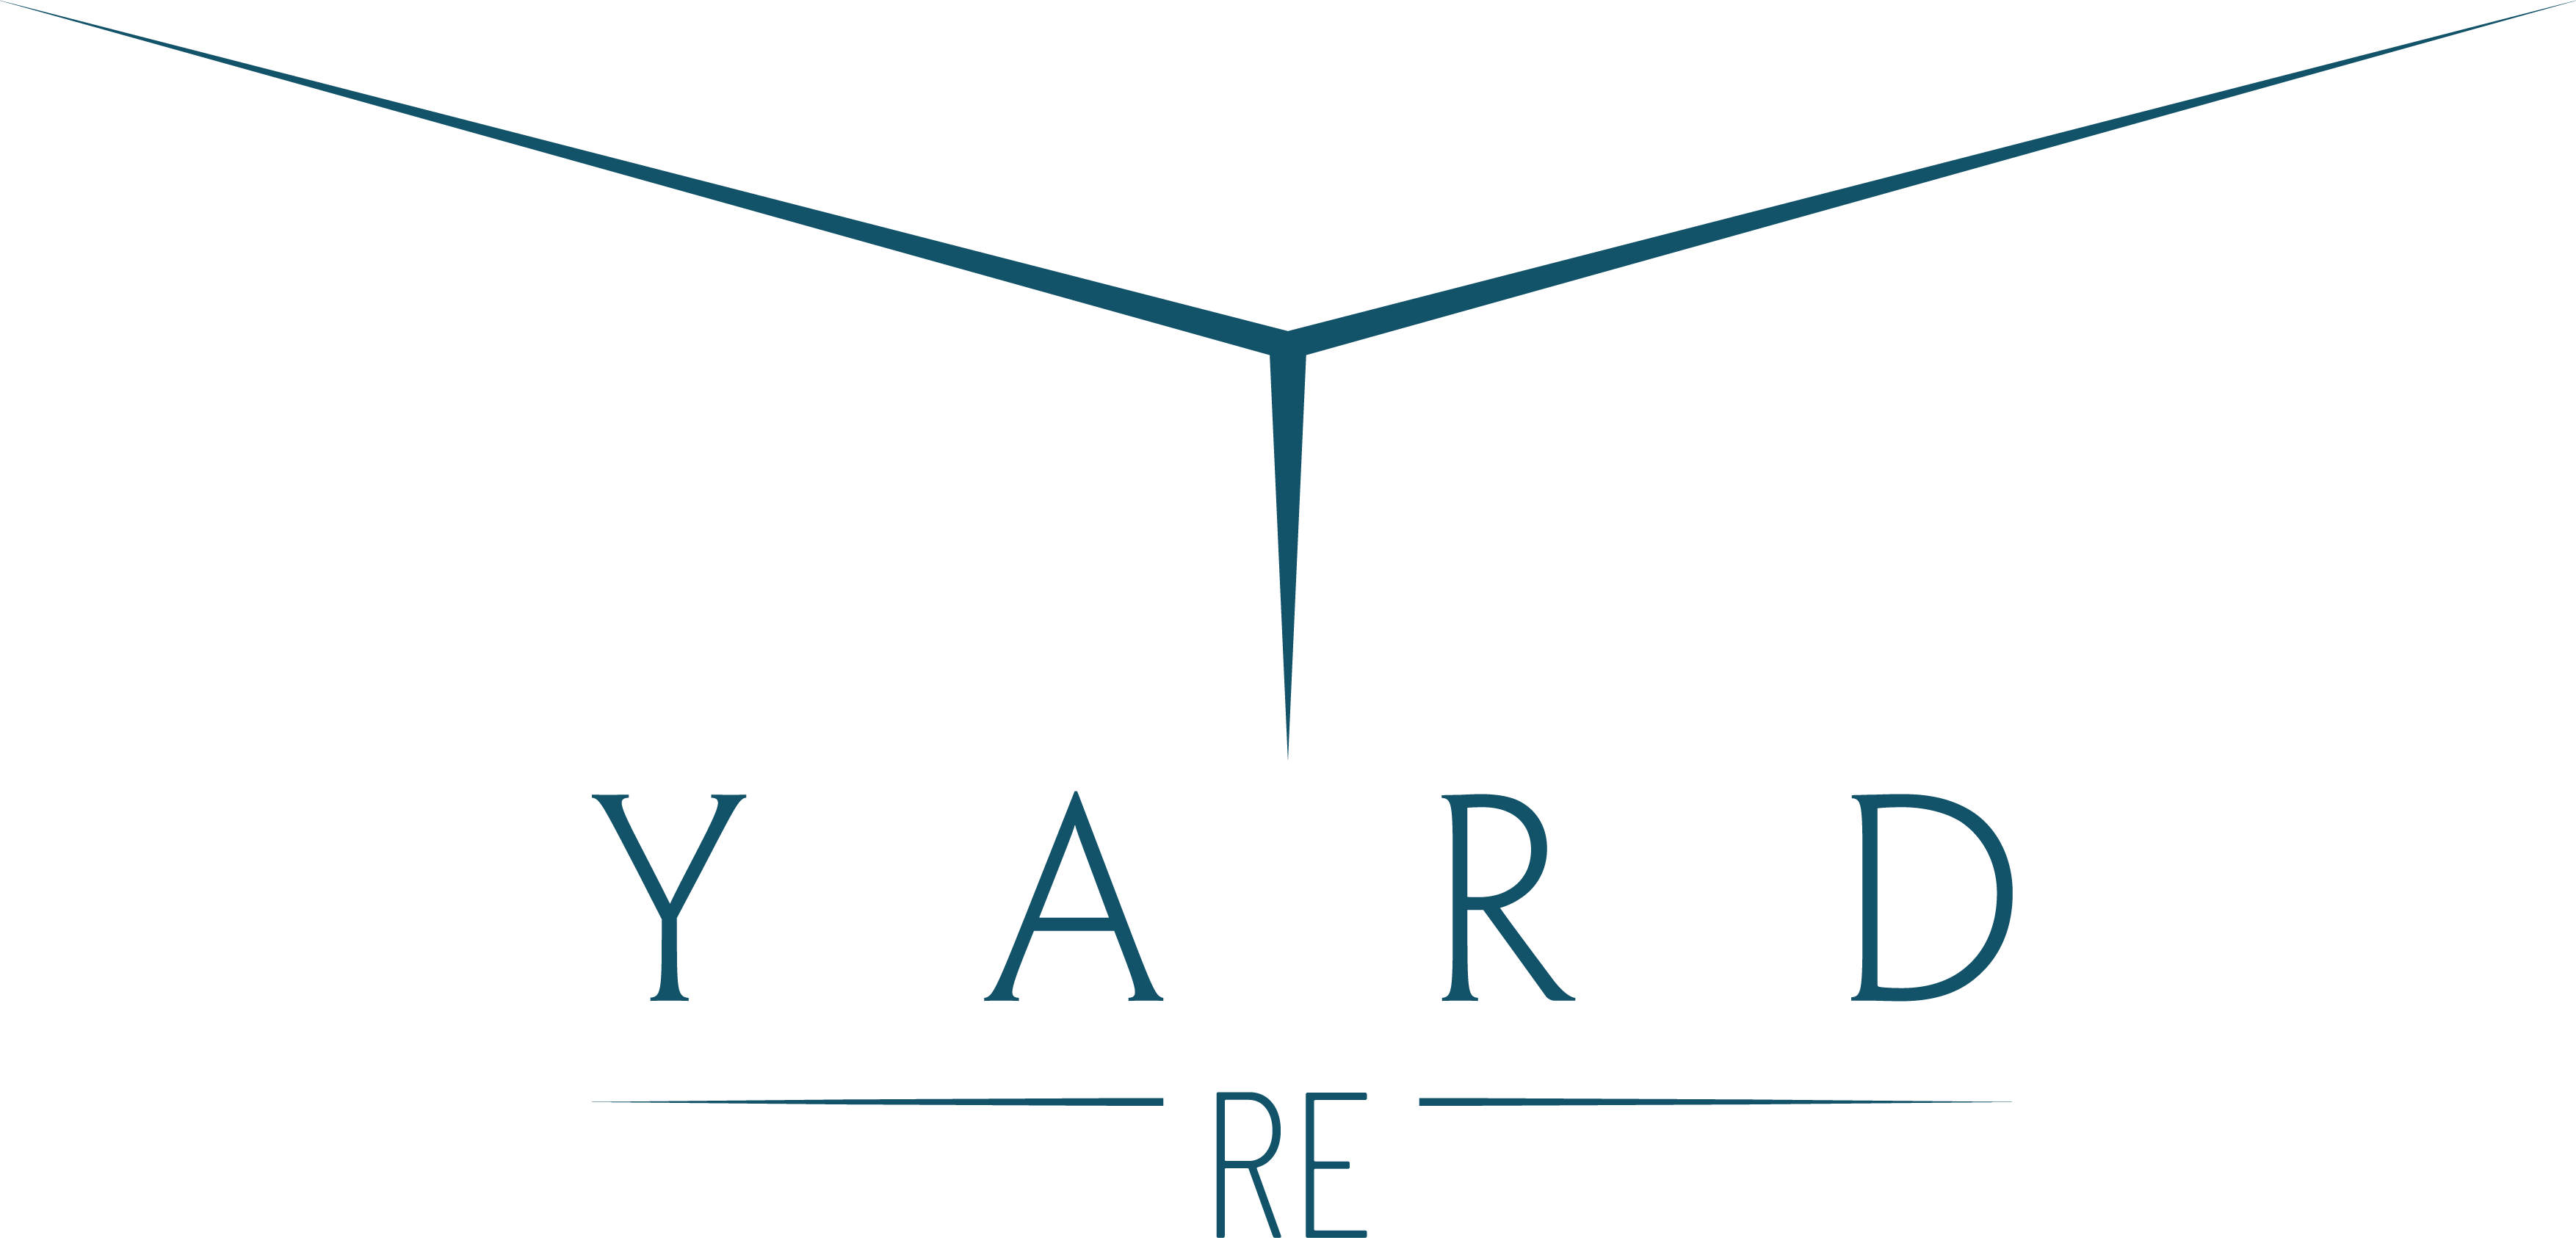 Logo yard re